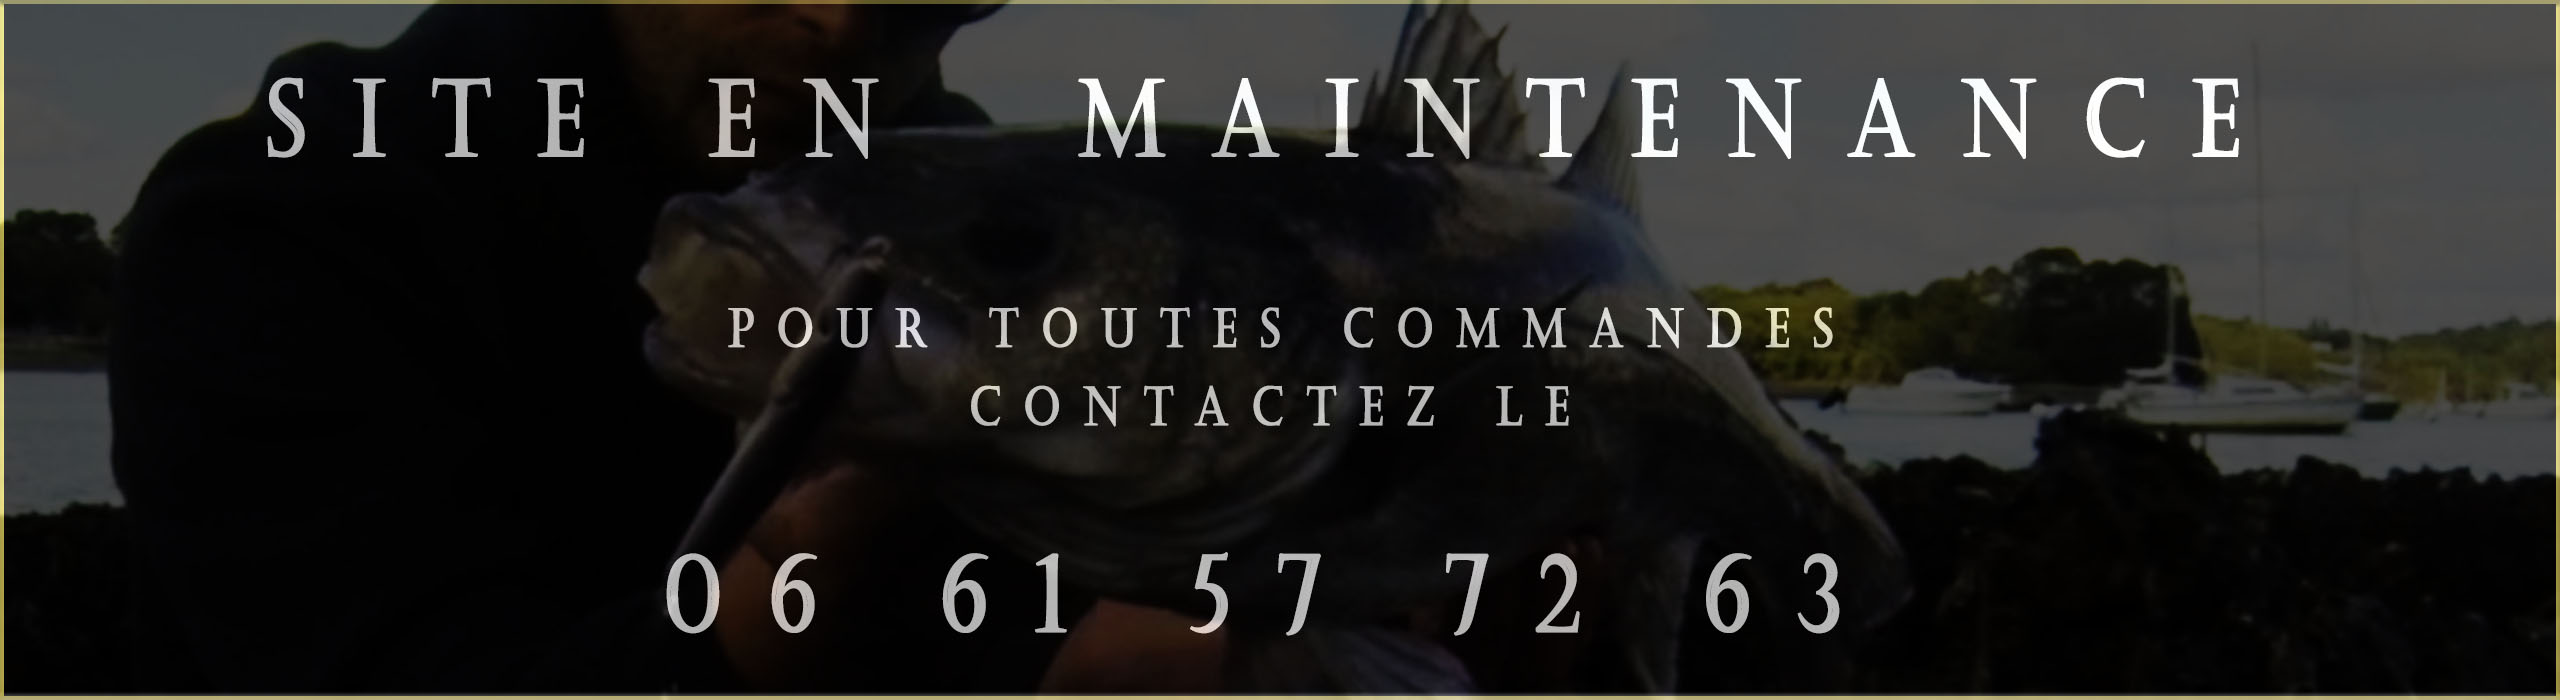 site_en_maintenace